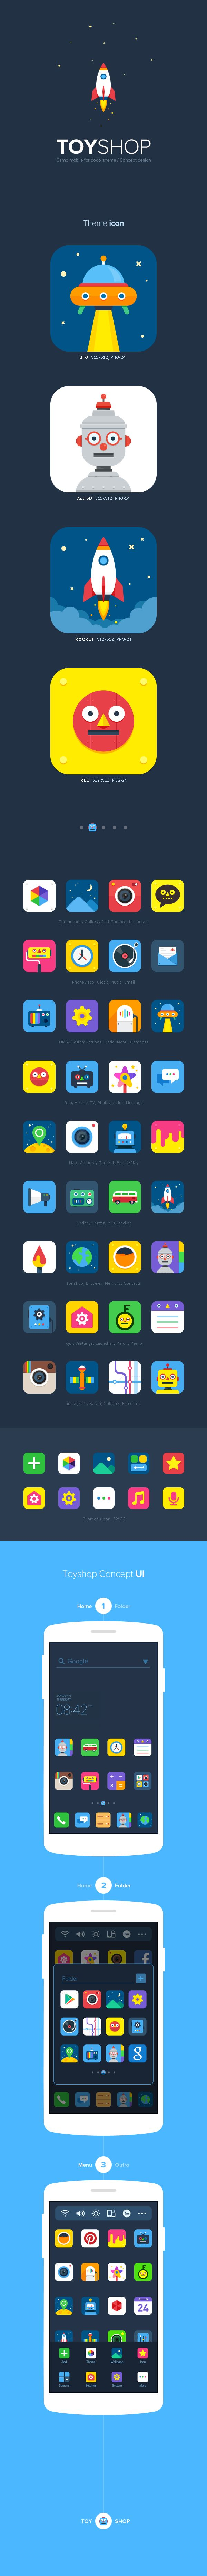 ToyShop by DongGeun Lee, via Behance